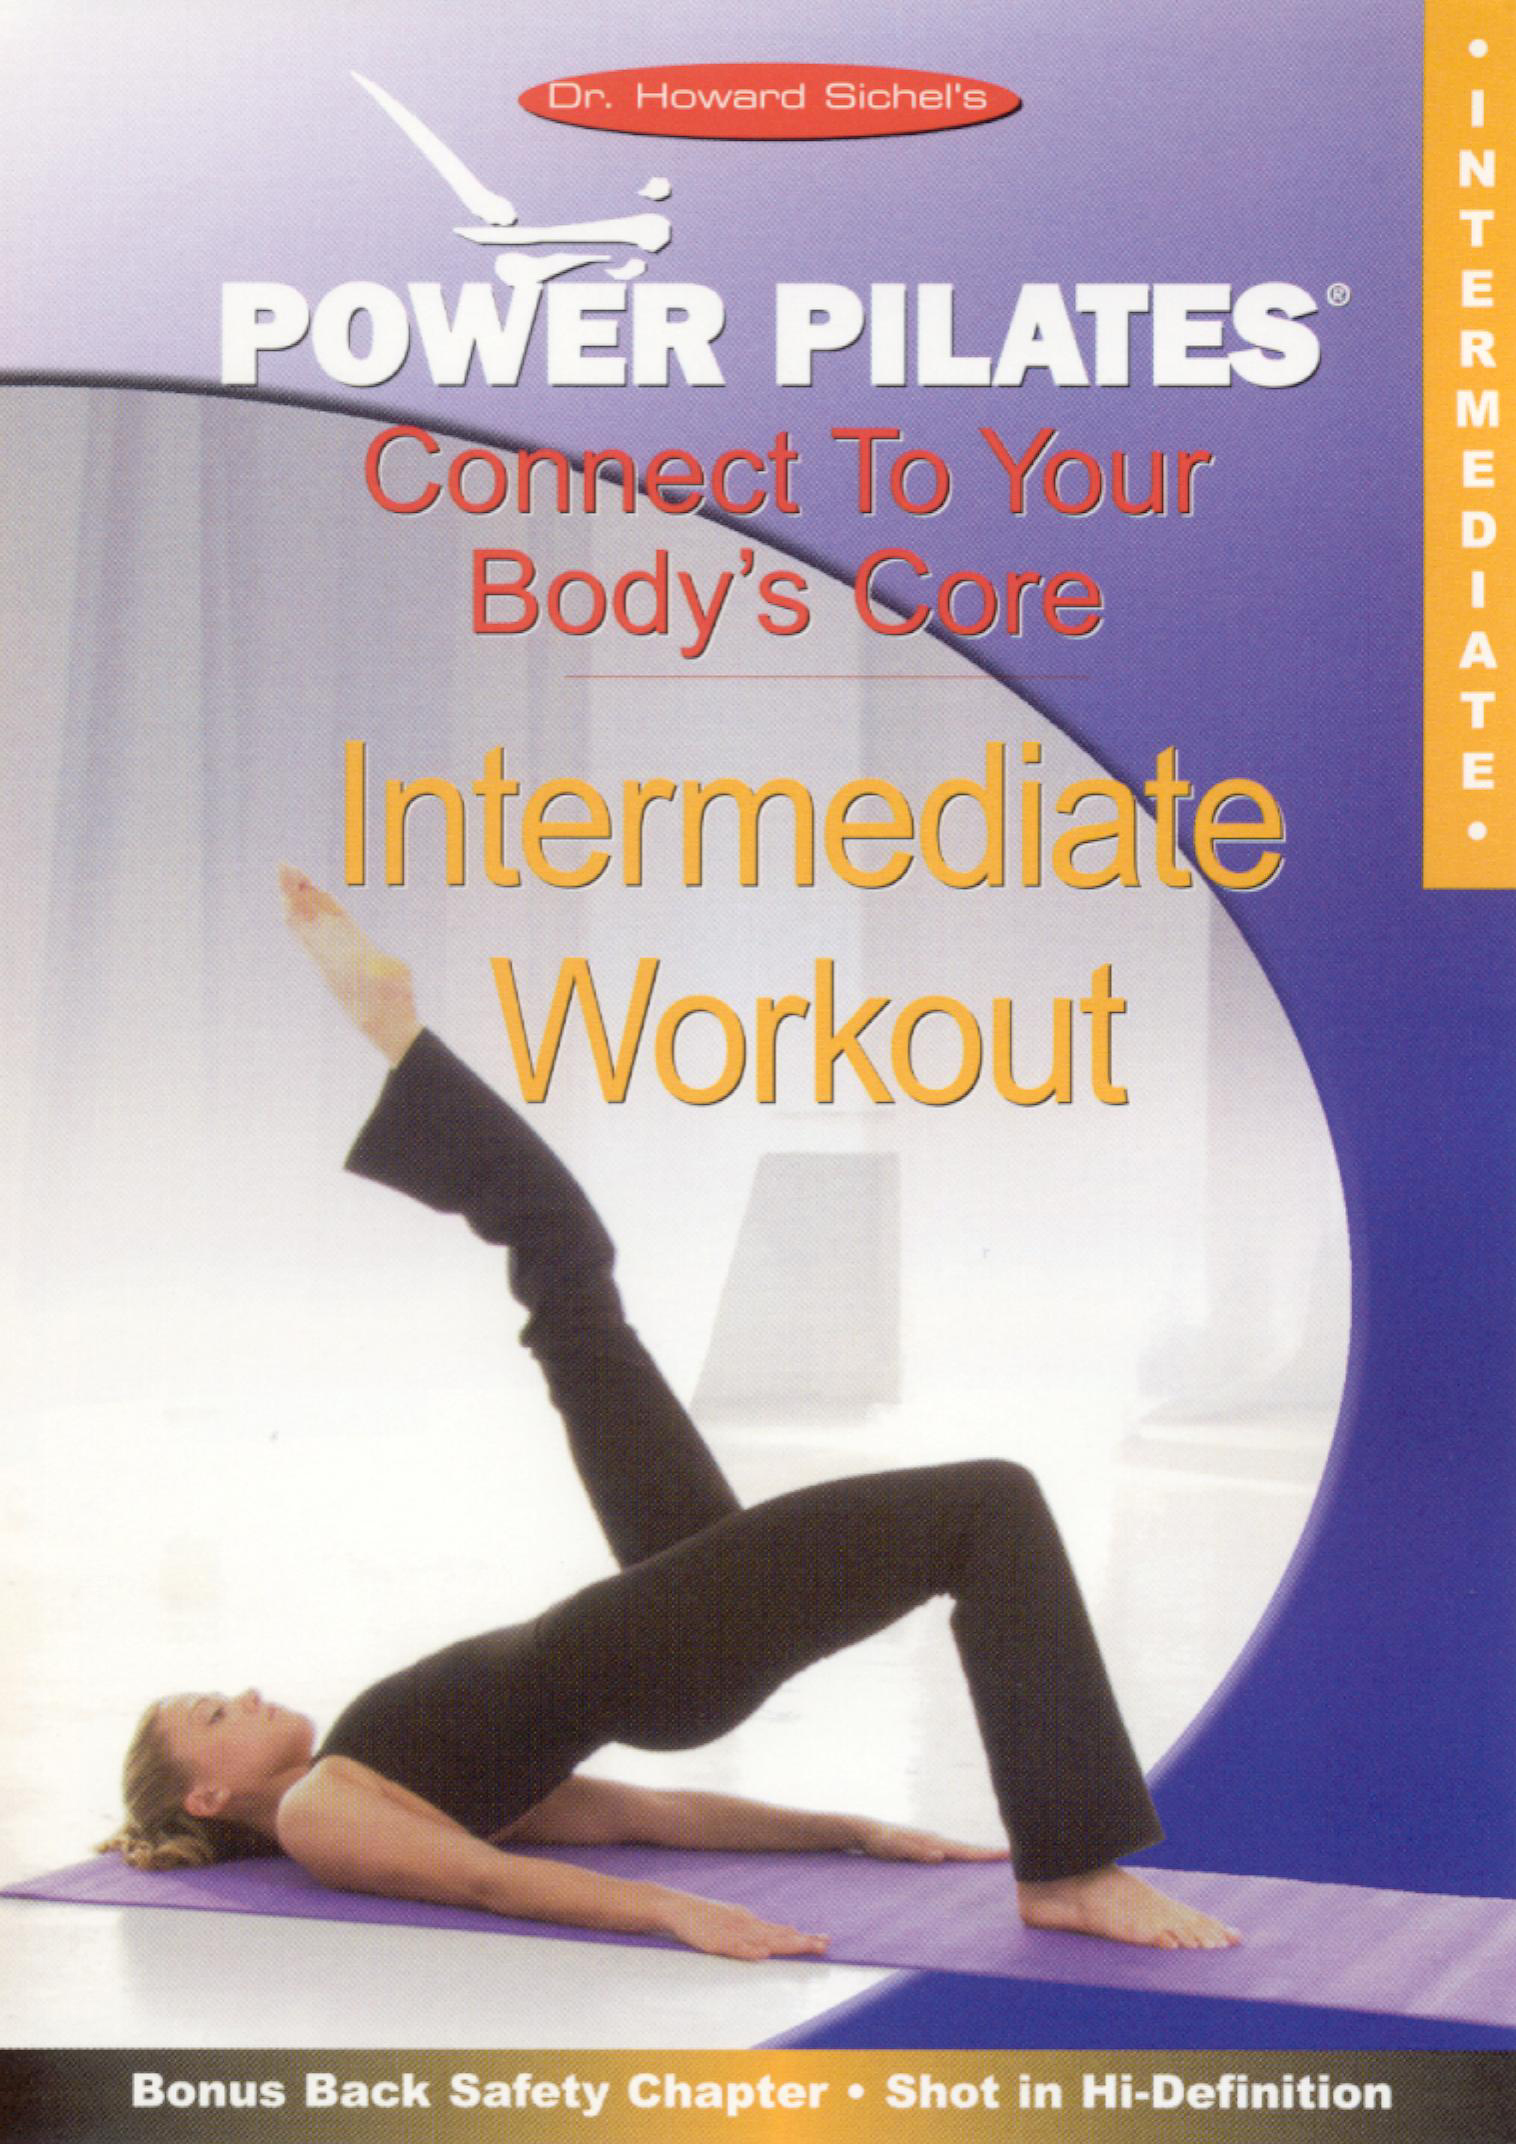 Power Pilates: Connect to Your Body's Core - Intermediate Workout